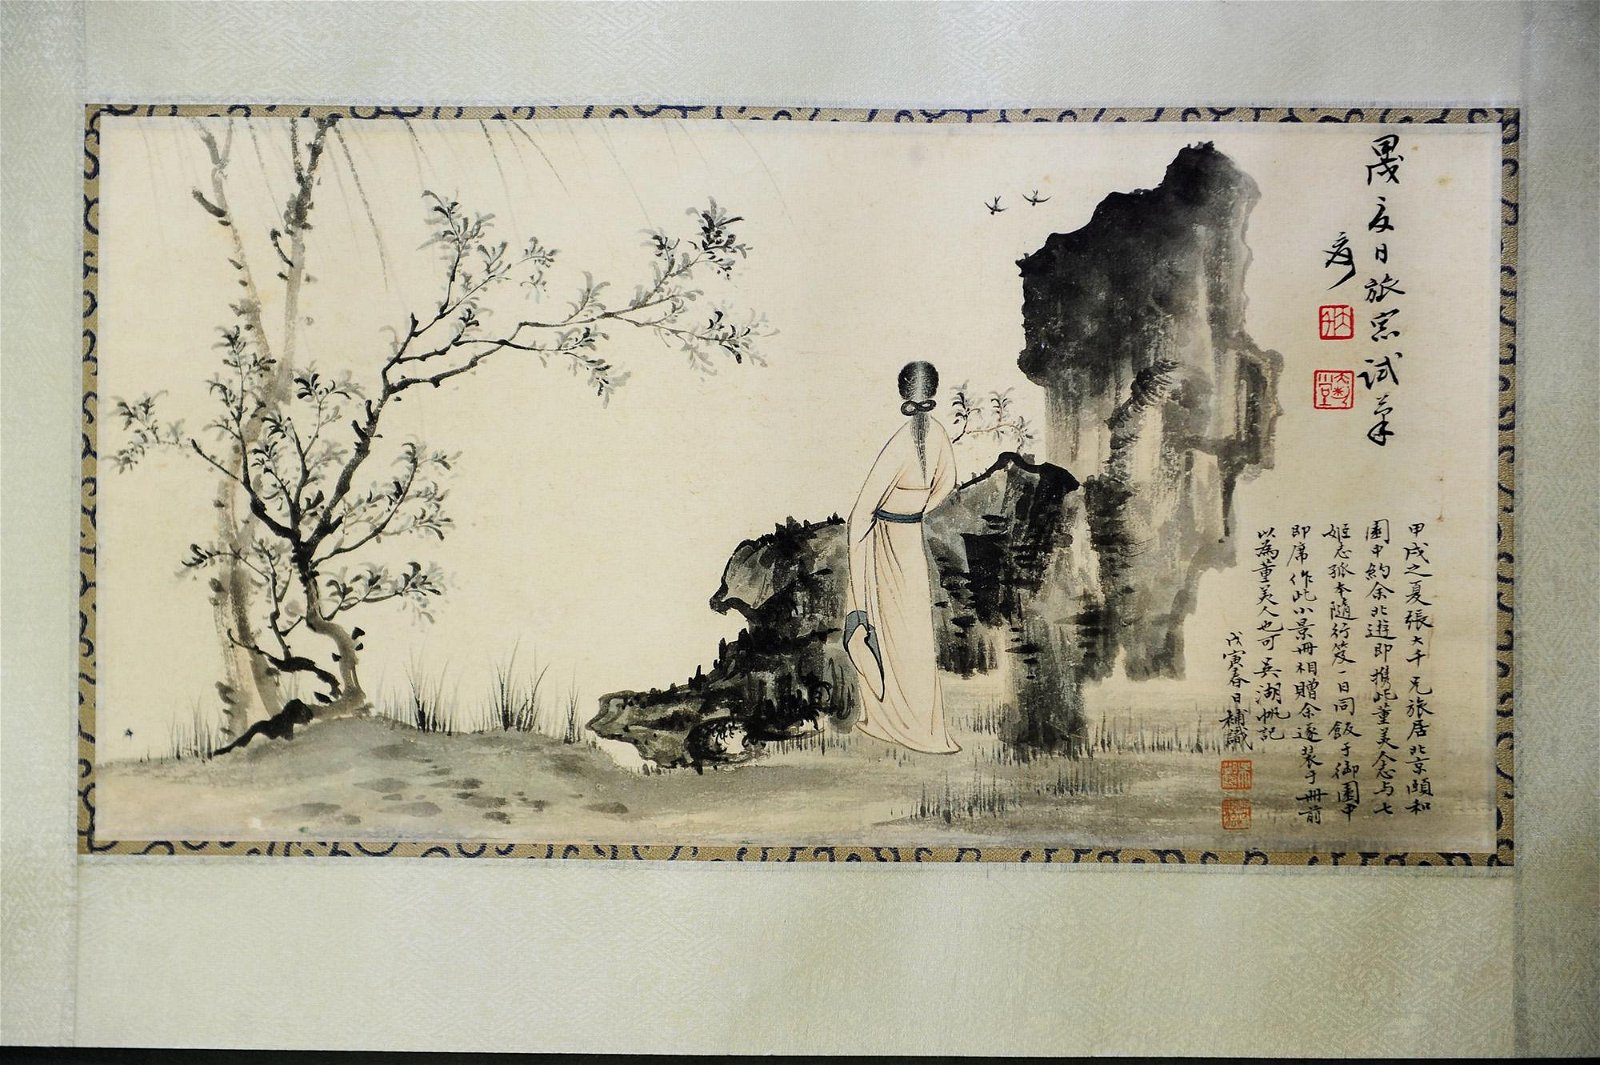 ZHANG DAQIAN: INK AND COLOR ON PAPER PAINTING